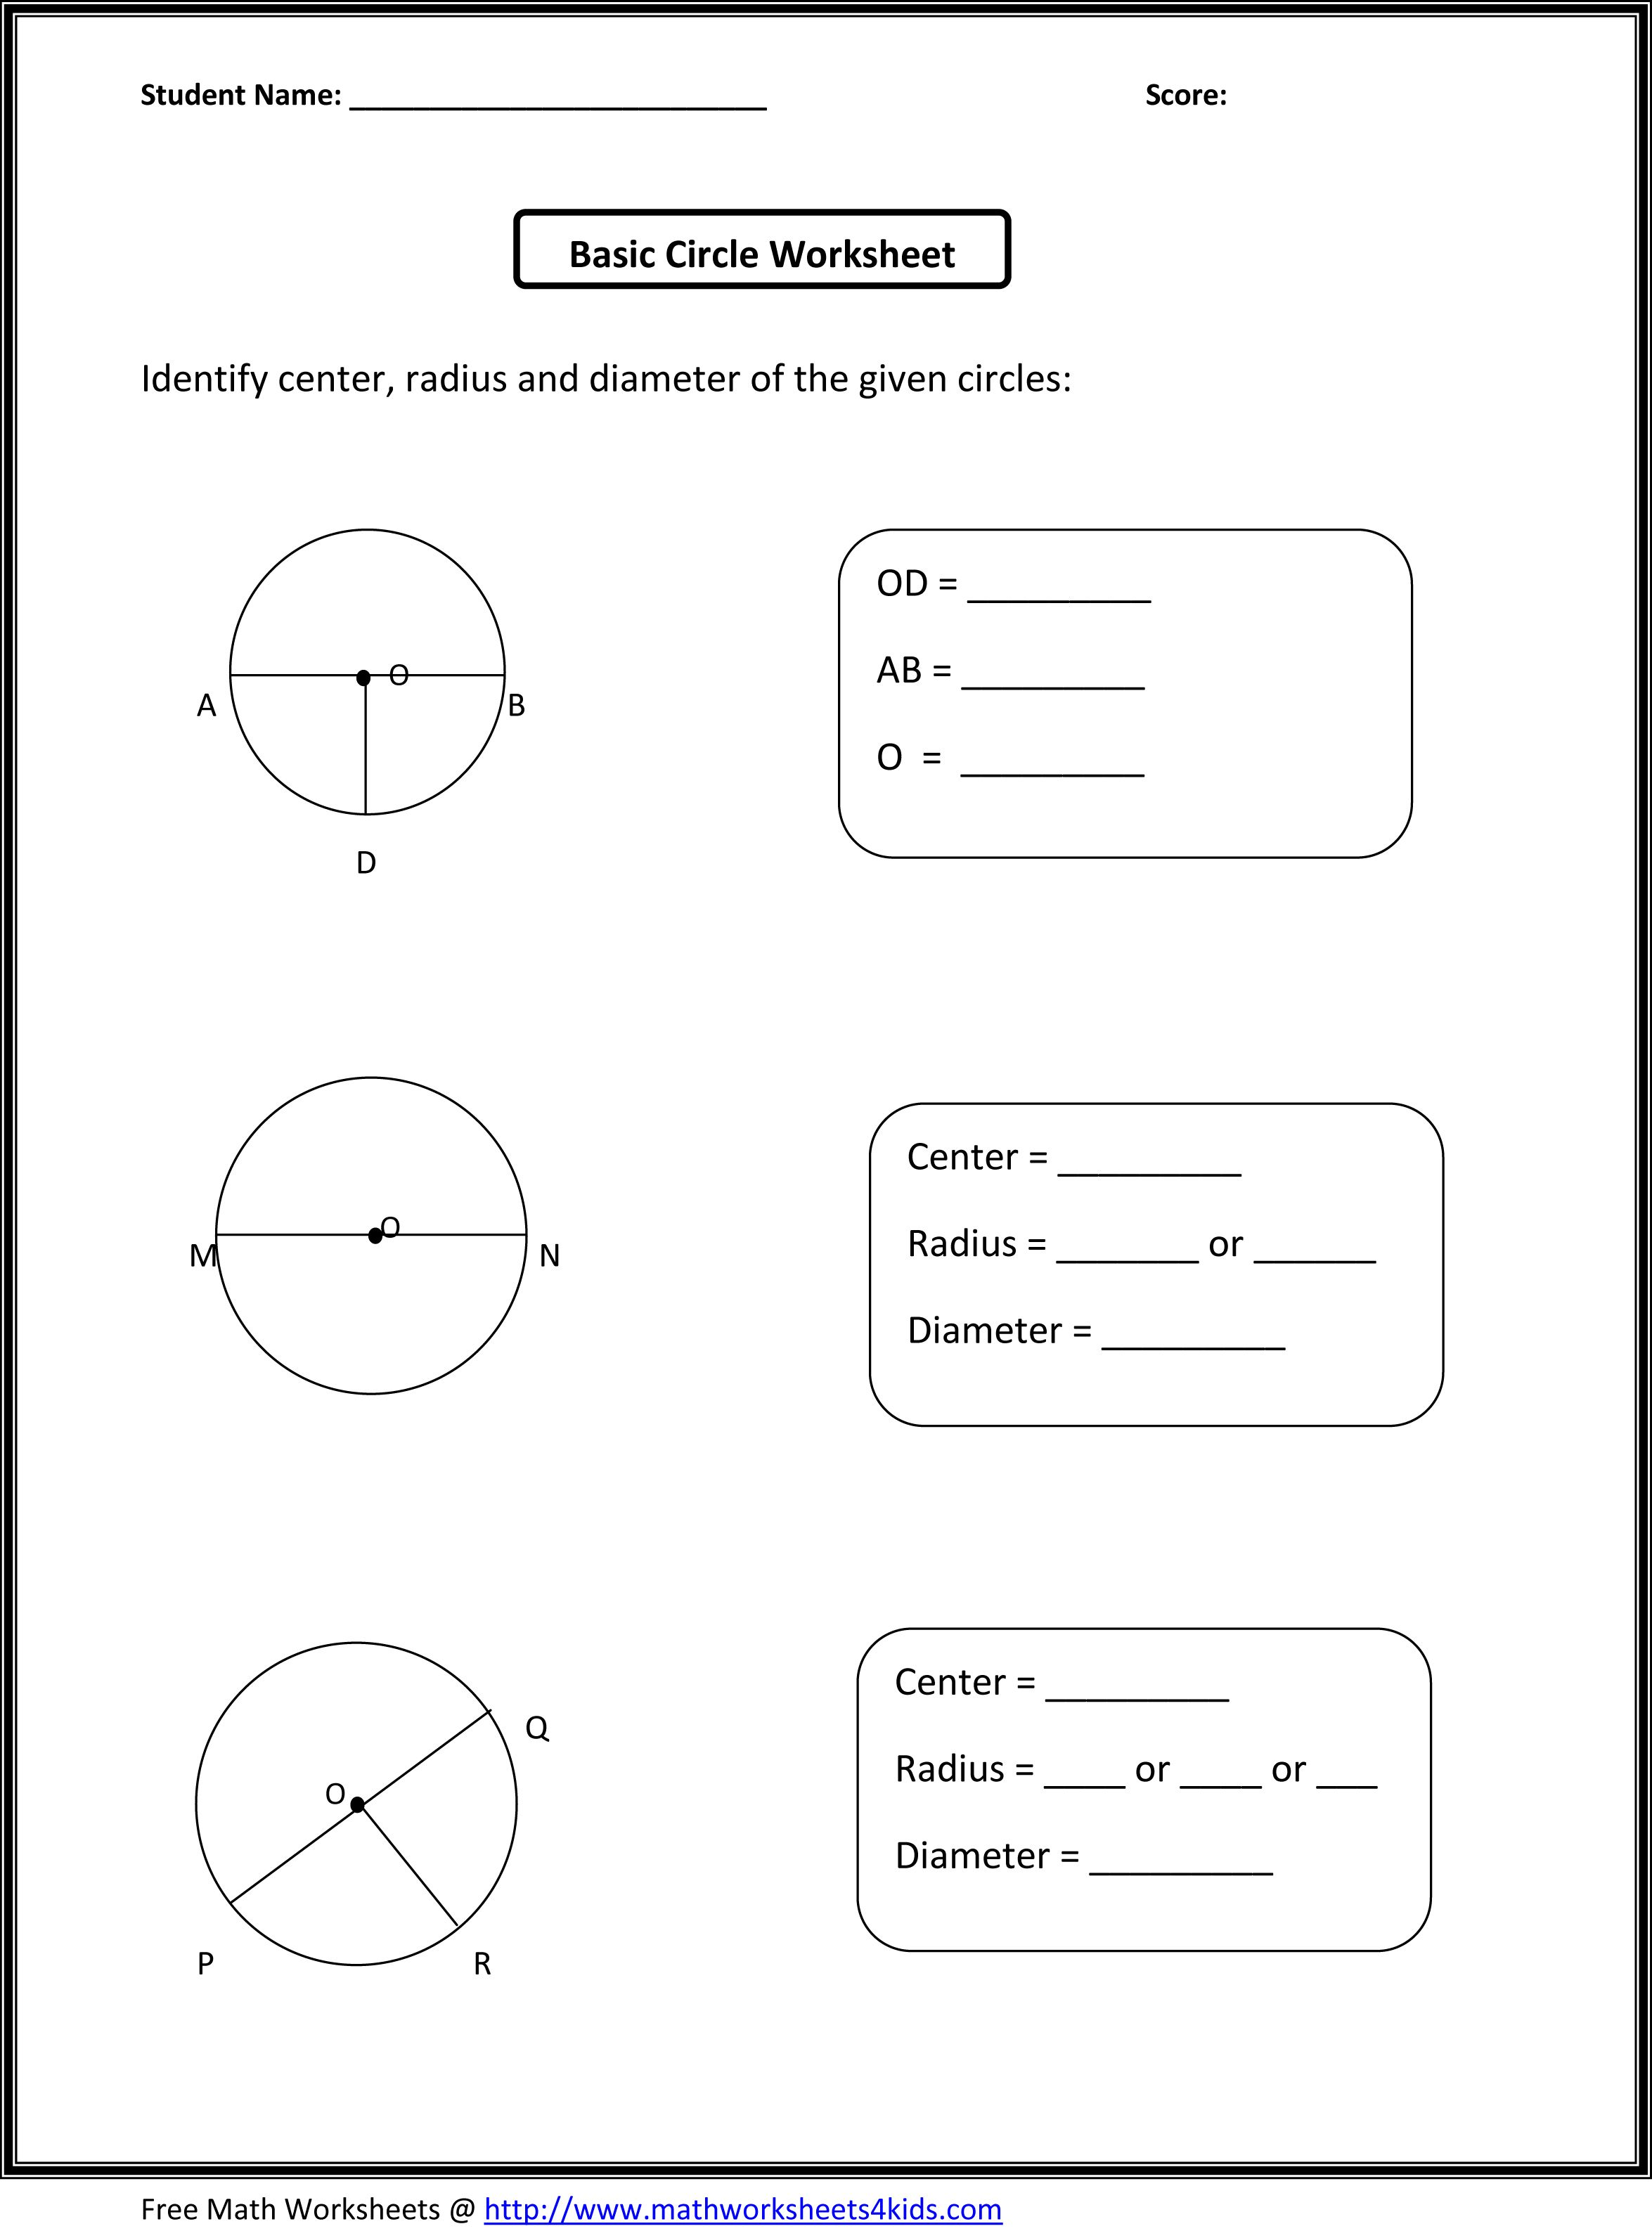 math worksheet : basic circle worksheets  math charts  pinterest  worksheets  : Maths Circles Worksheets